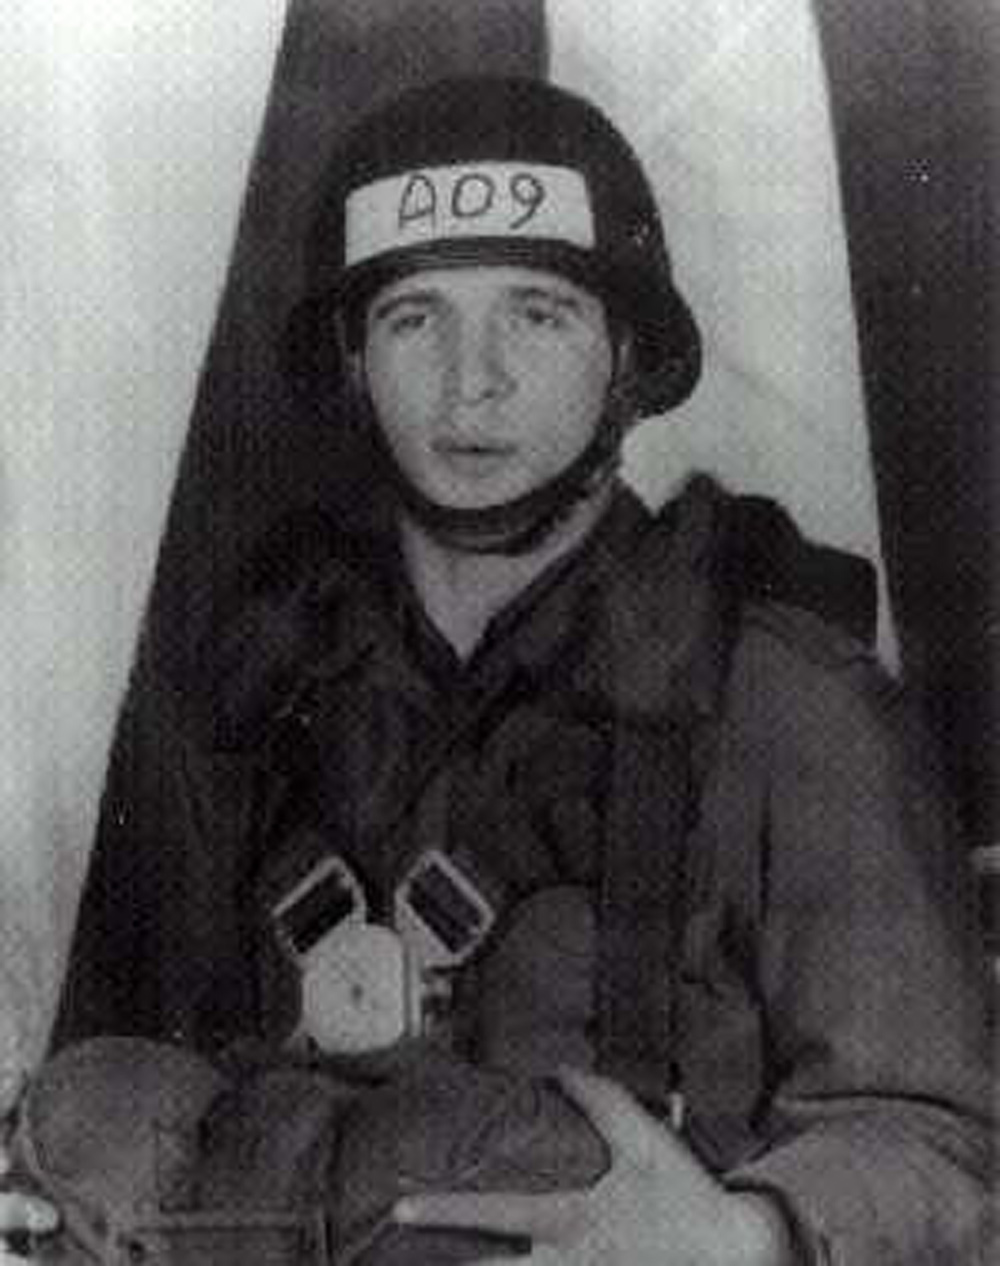 Pfc. Carlos Lozada was born in Puerto Rico and became a Army M-60 machine gunner.